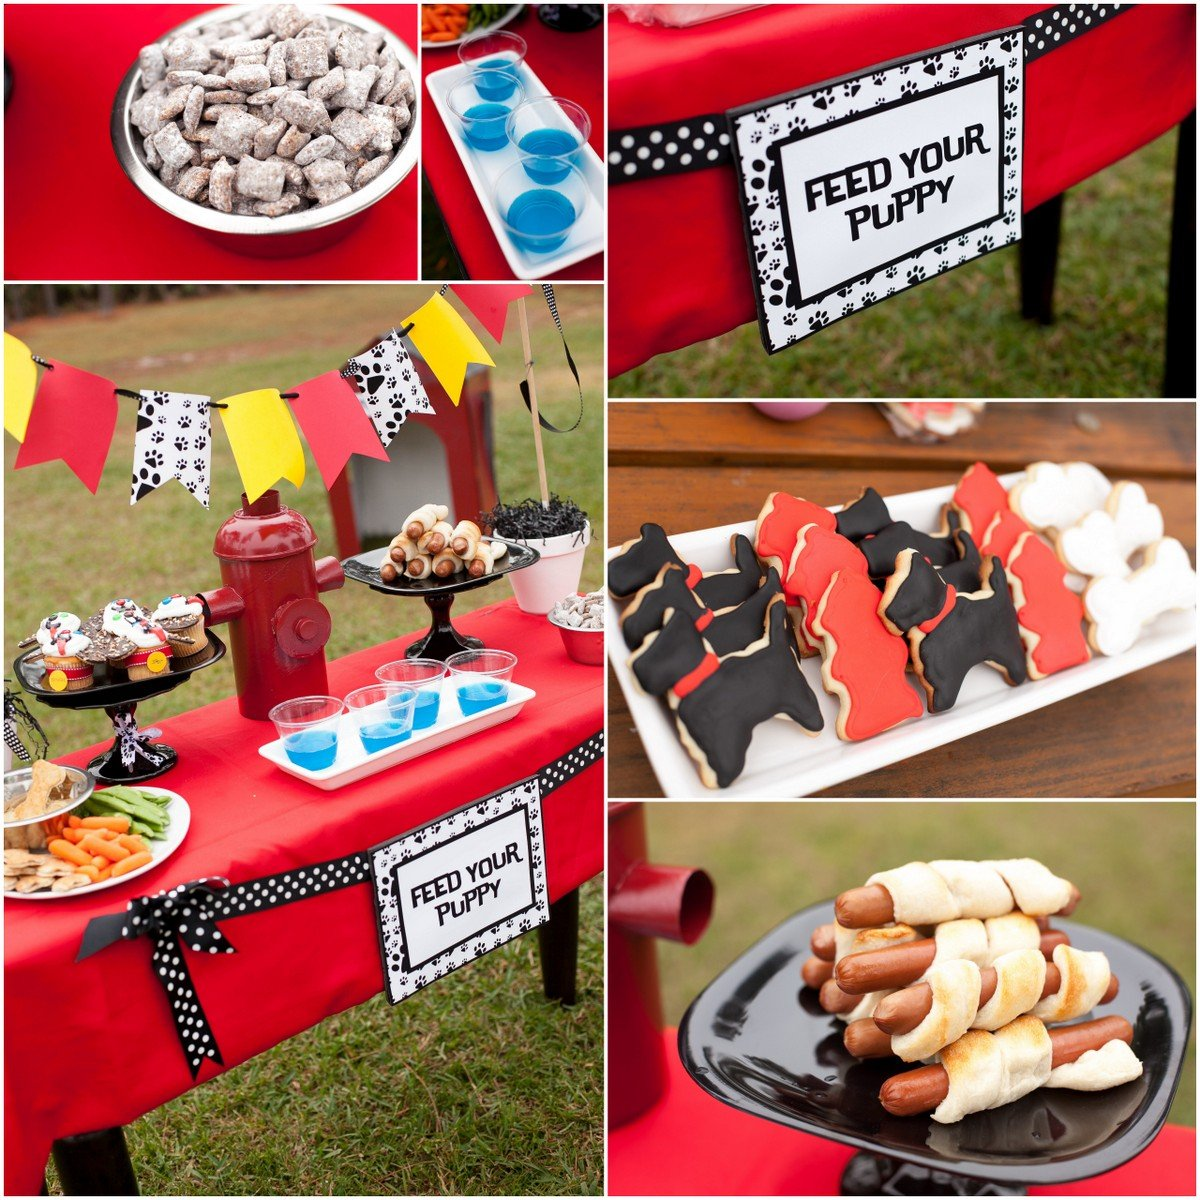 20 Easy Ideas For A Puppy Party On Budget